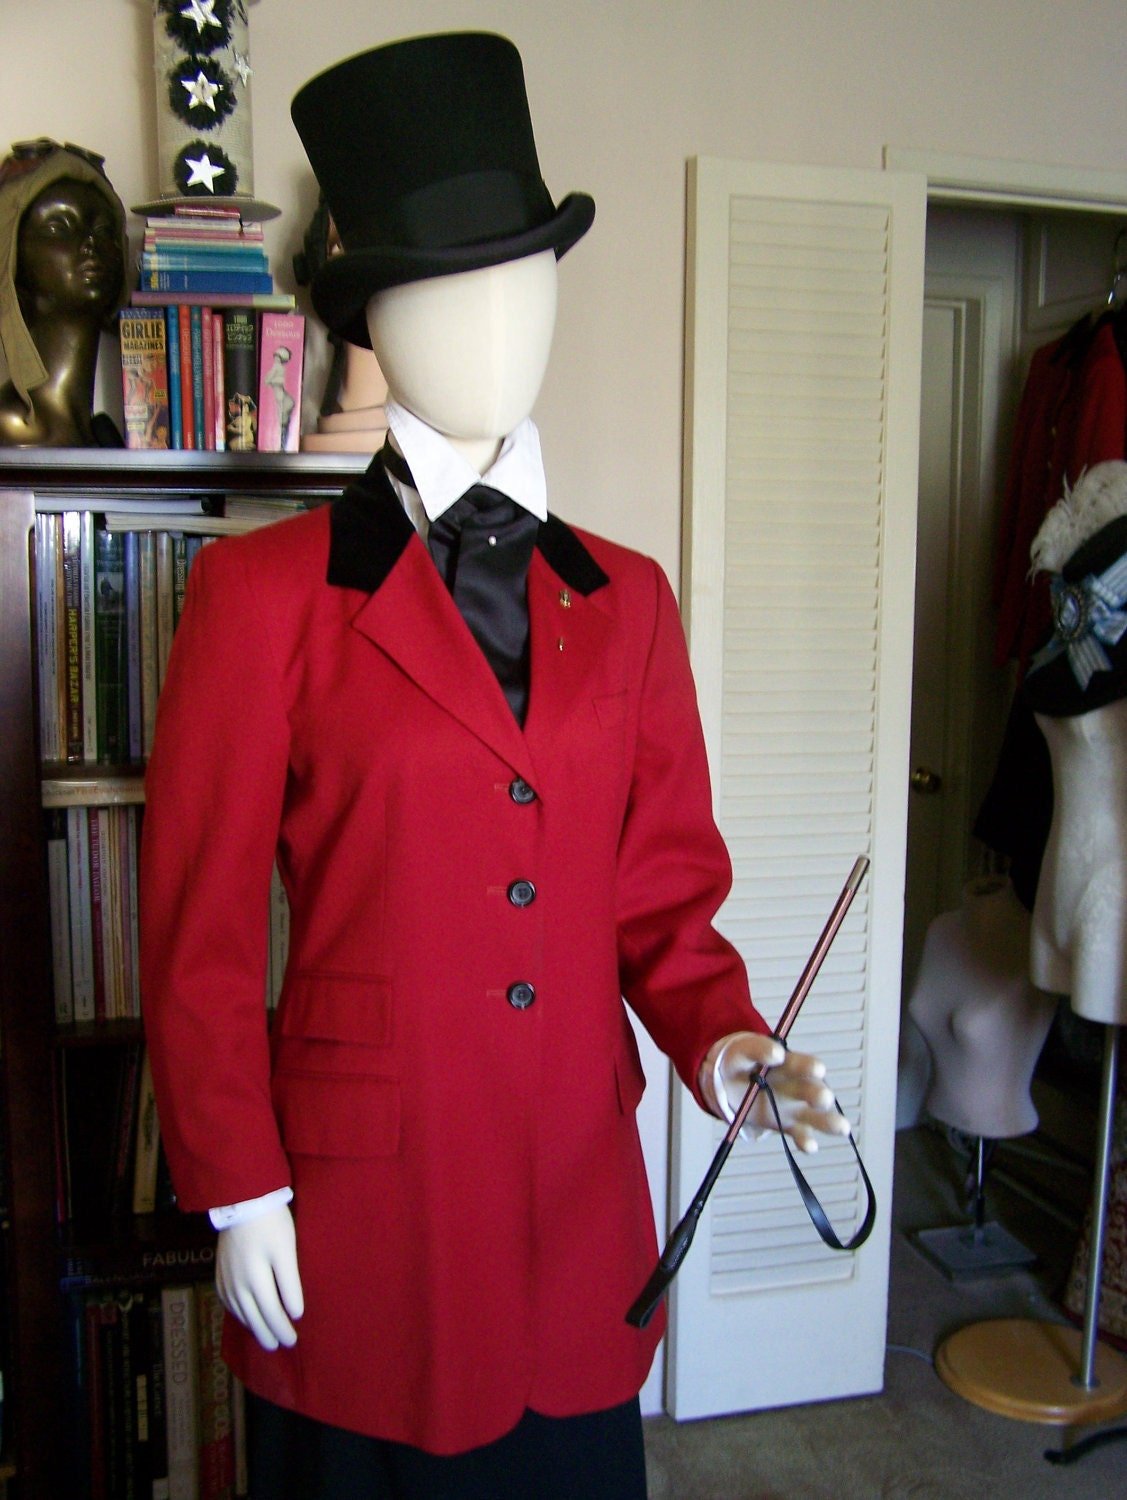 Edwardian Hunting Outfit Riding Habit Size 8 Medium/Large- Downton Abbey, Titanic, Victorian - finnmoxa